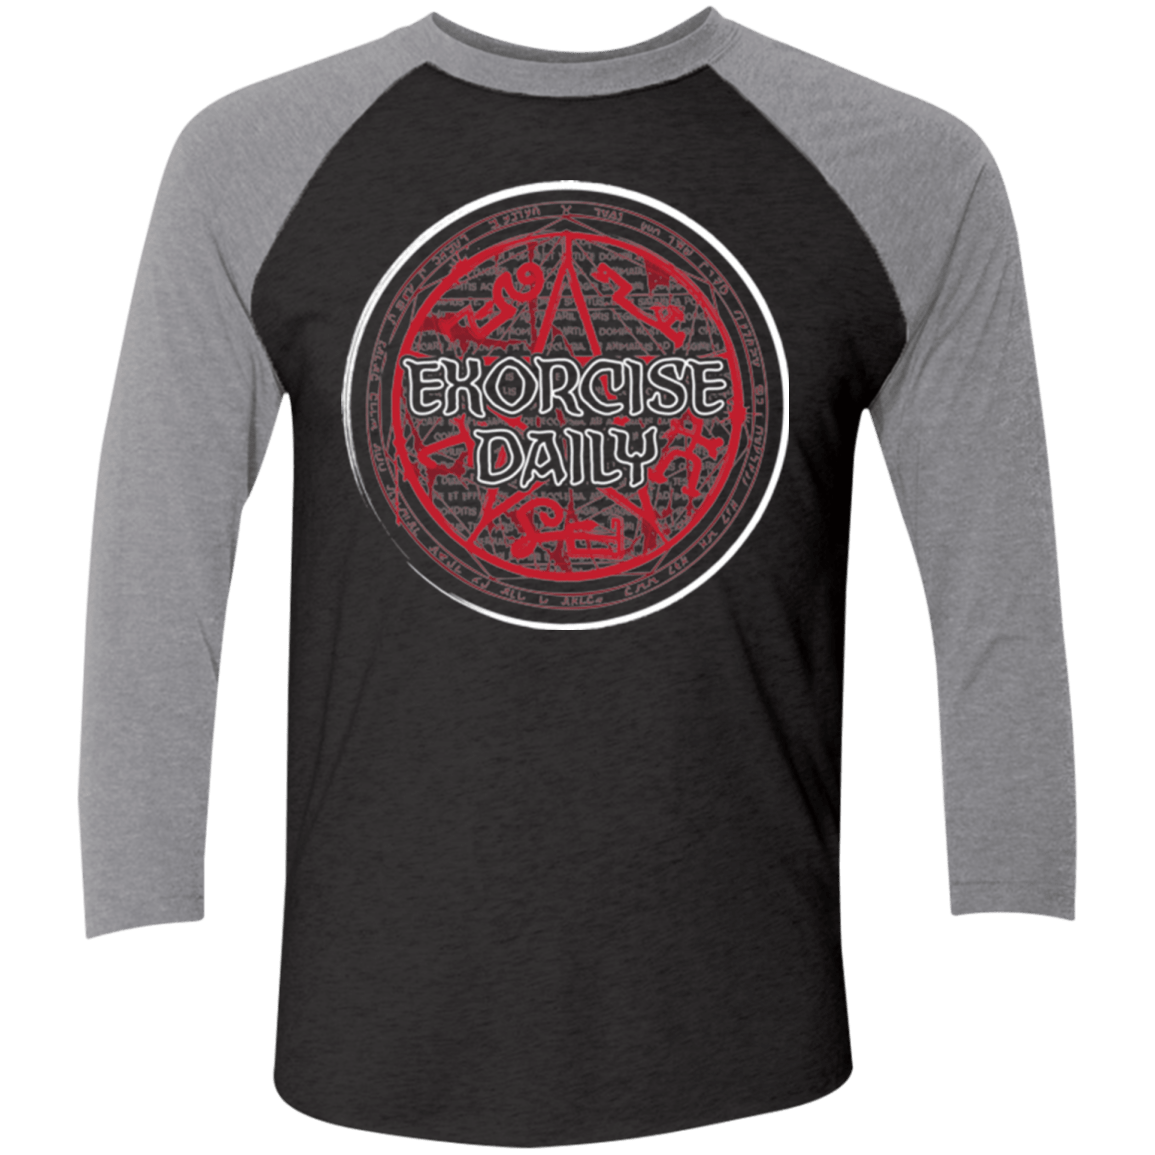 T-Shirts Vintage Black/Premium Heather / X-Small Exorcise Daily Men's Triblend 3/4 Sleeve